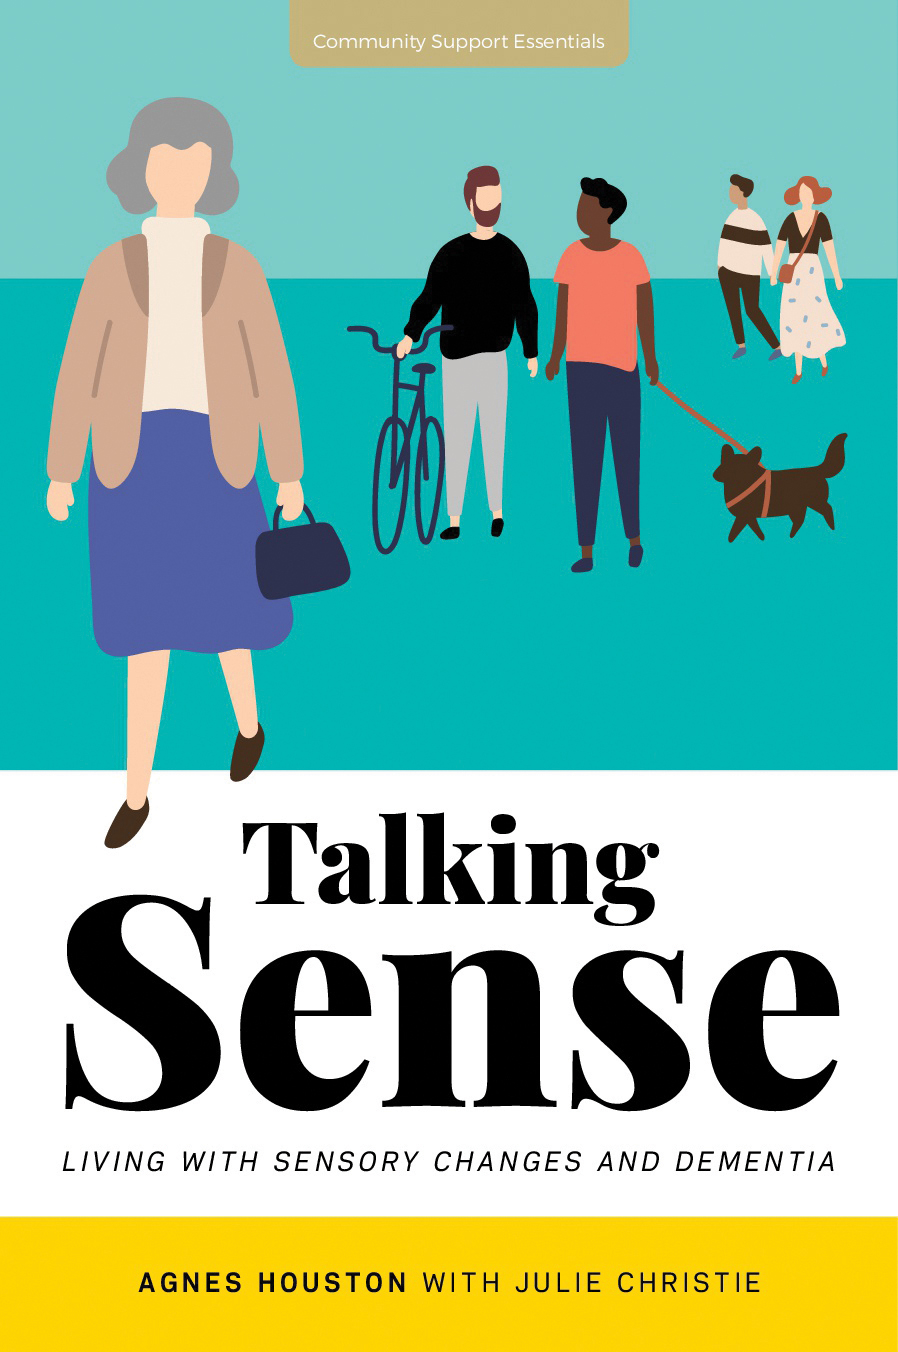 x.Talking sense by Agnes Houston.jpg